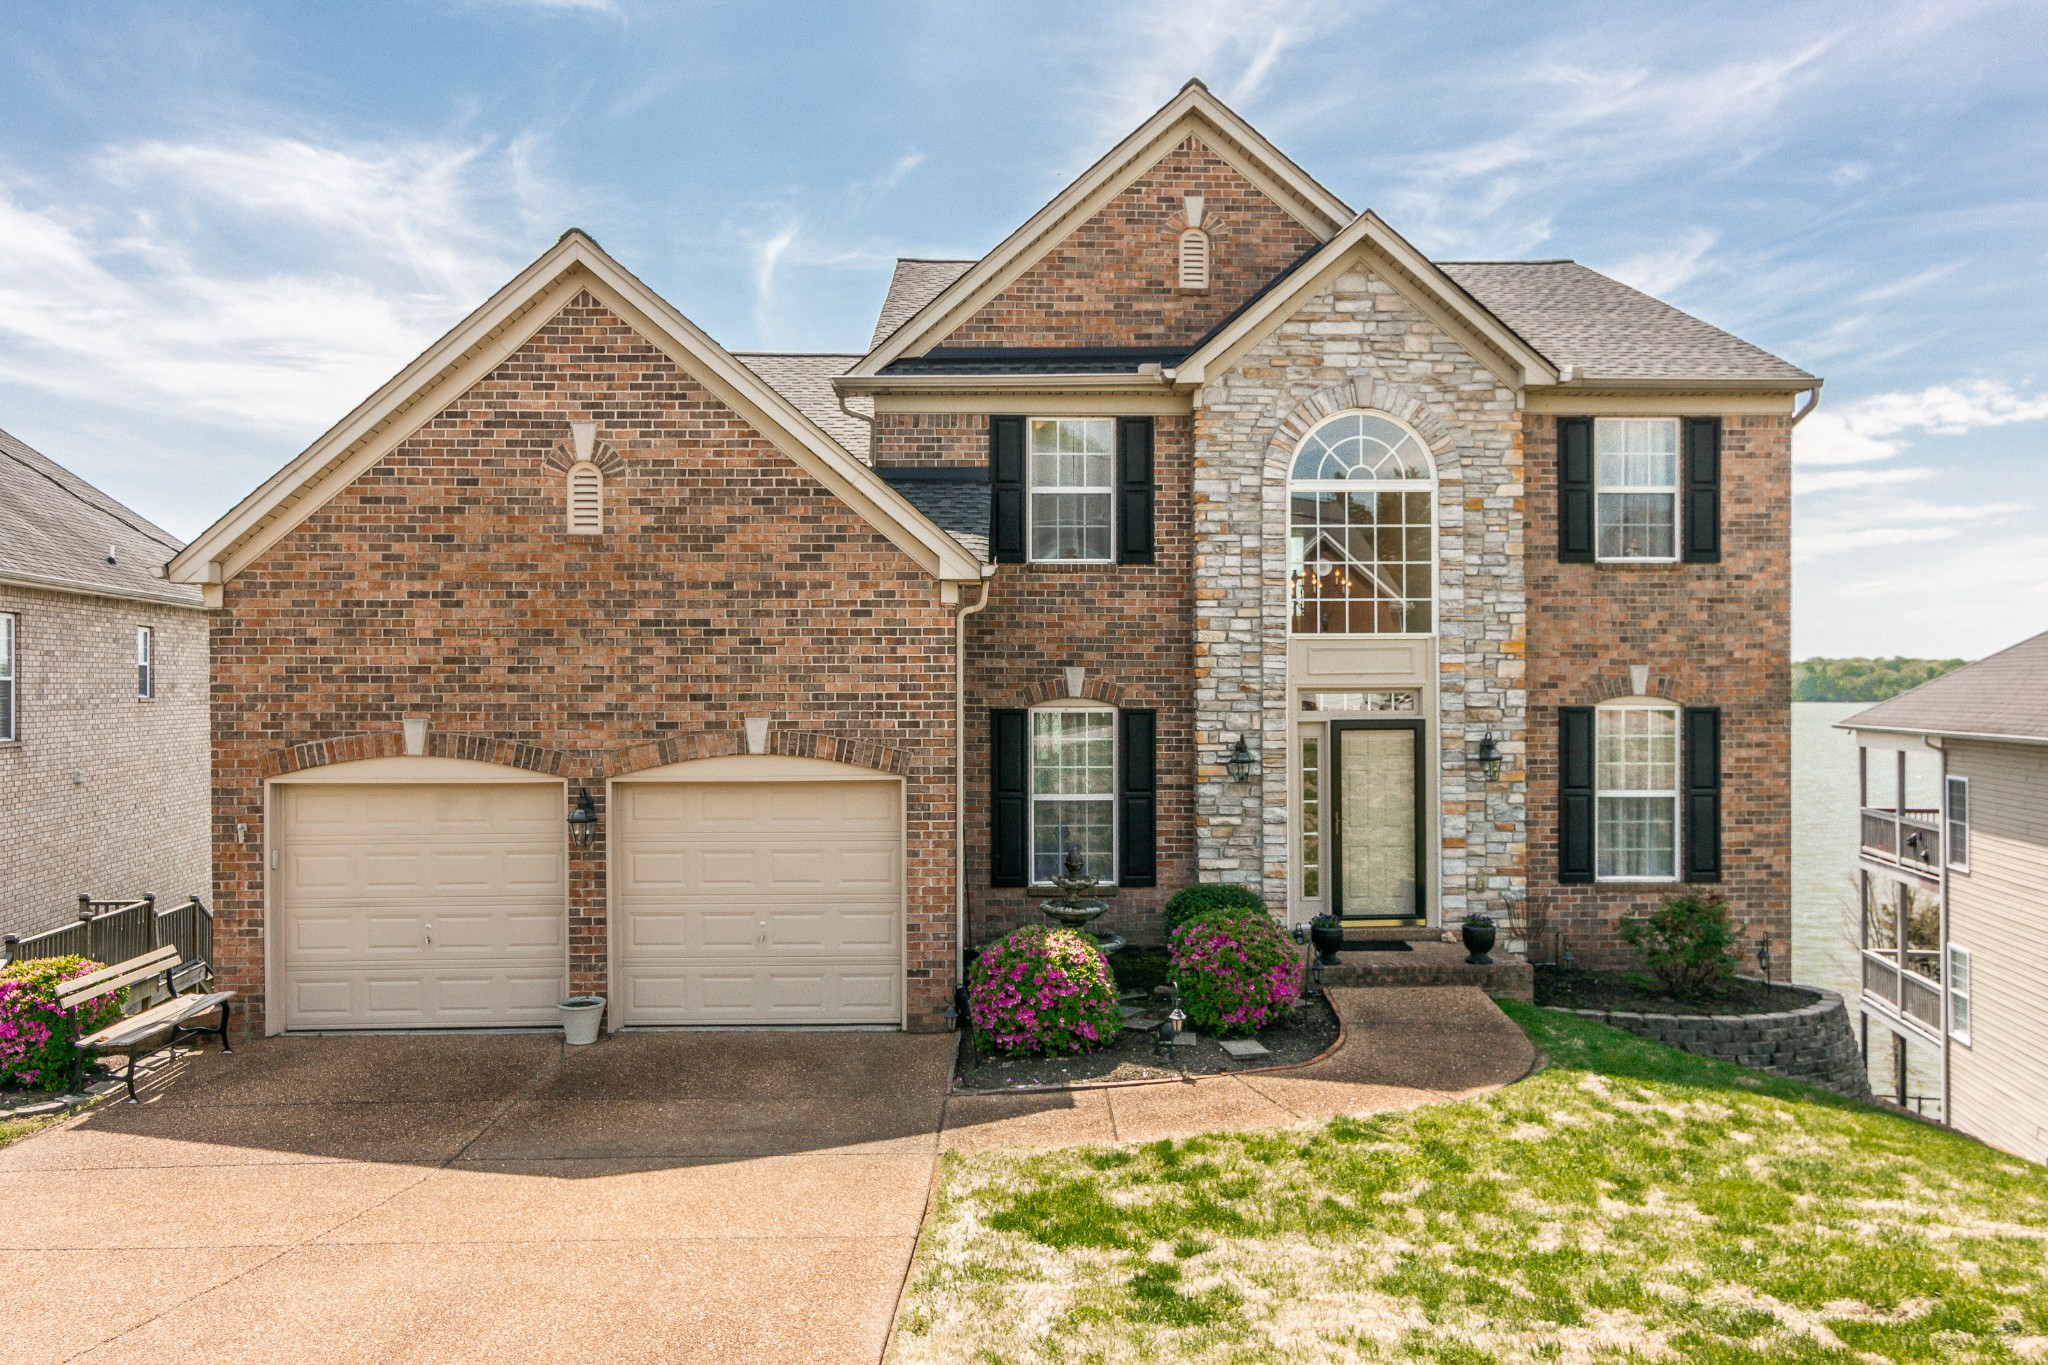 213 E Harbor, W Property Photo - Hendersonville, TN real estate listing